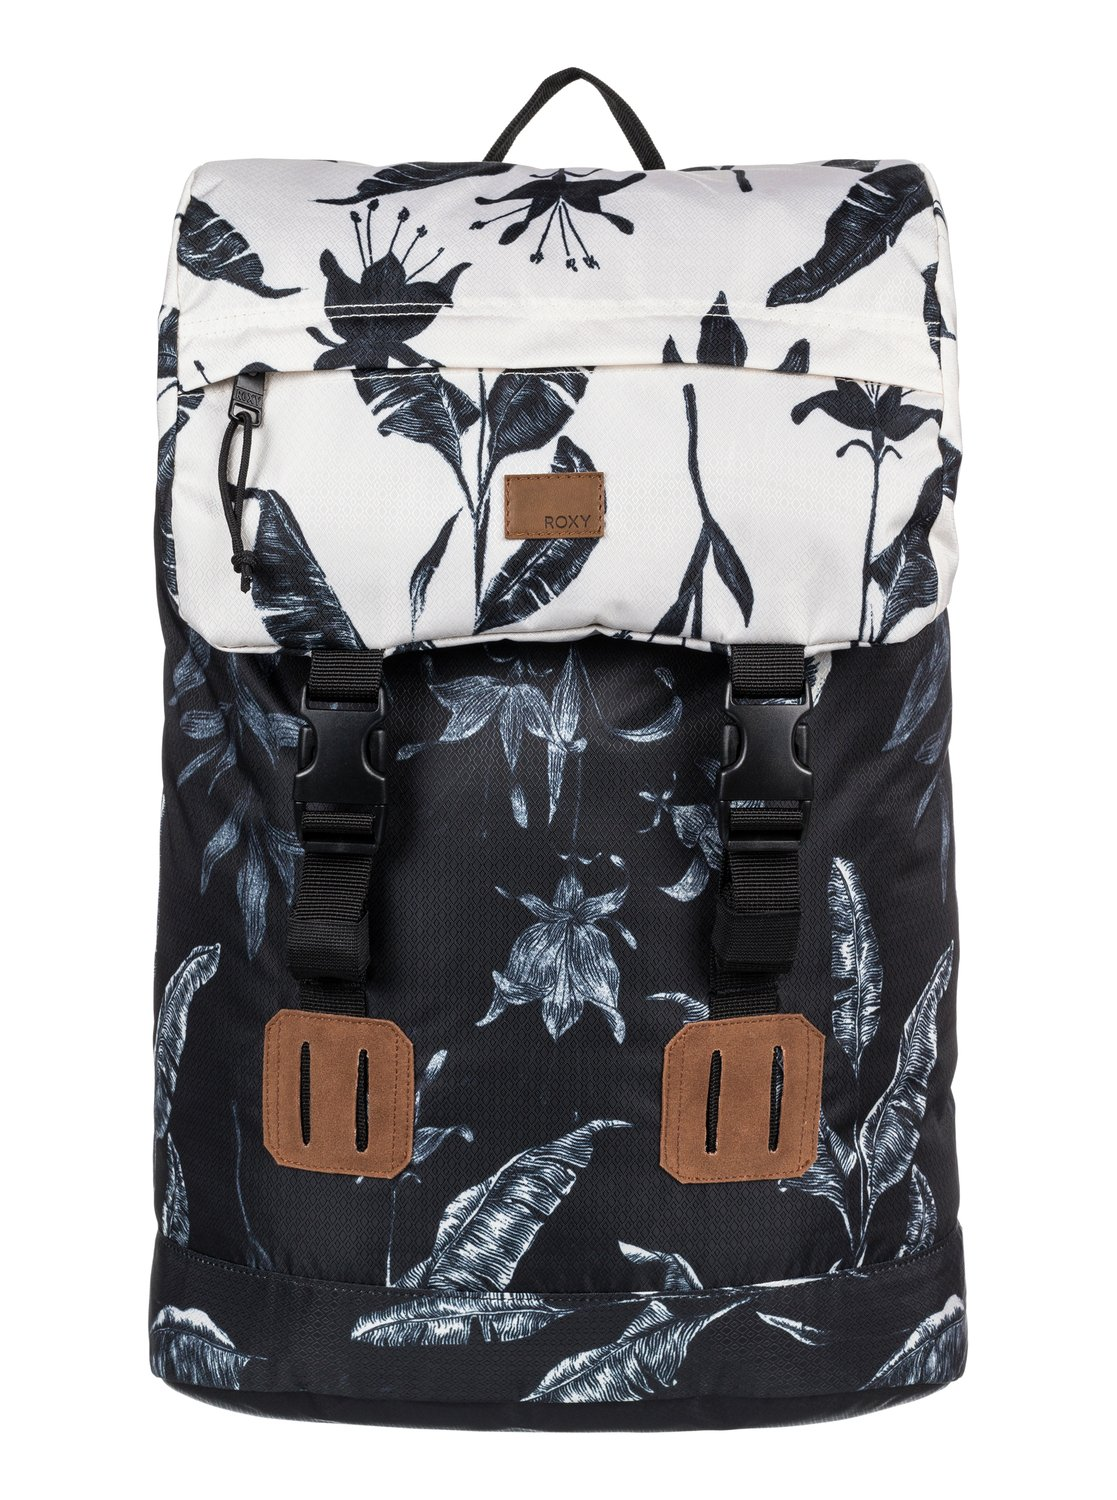 Sac à dos Quiksilver - Free Your Wild Love - 1 compartiment 0n6MMP